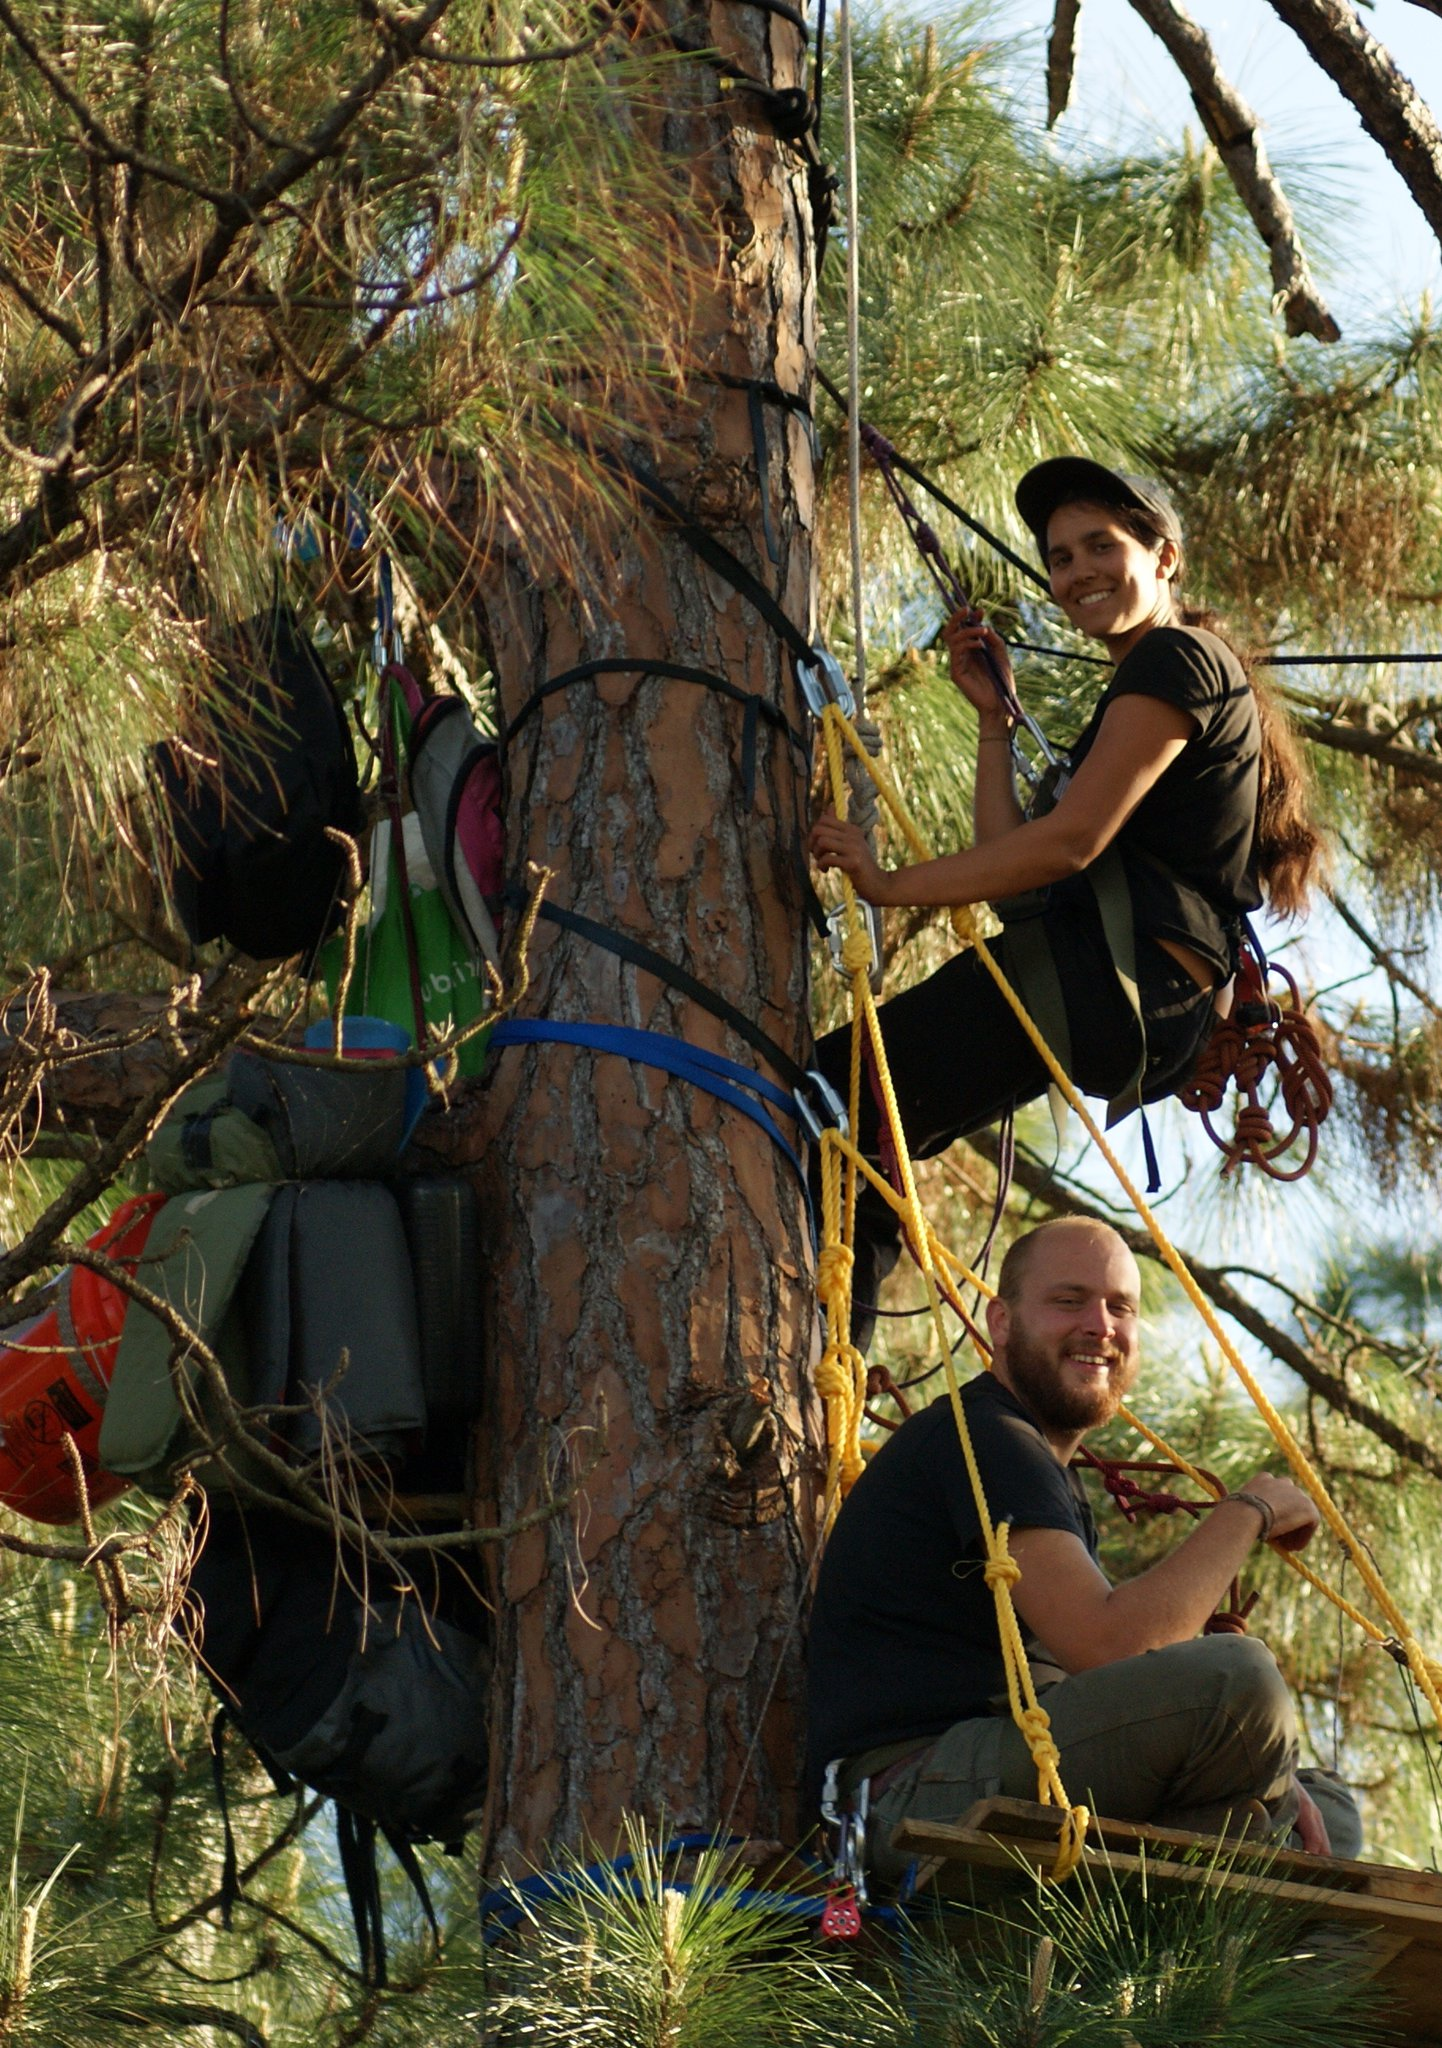 RICO Act Used Against Tree Sitters